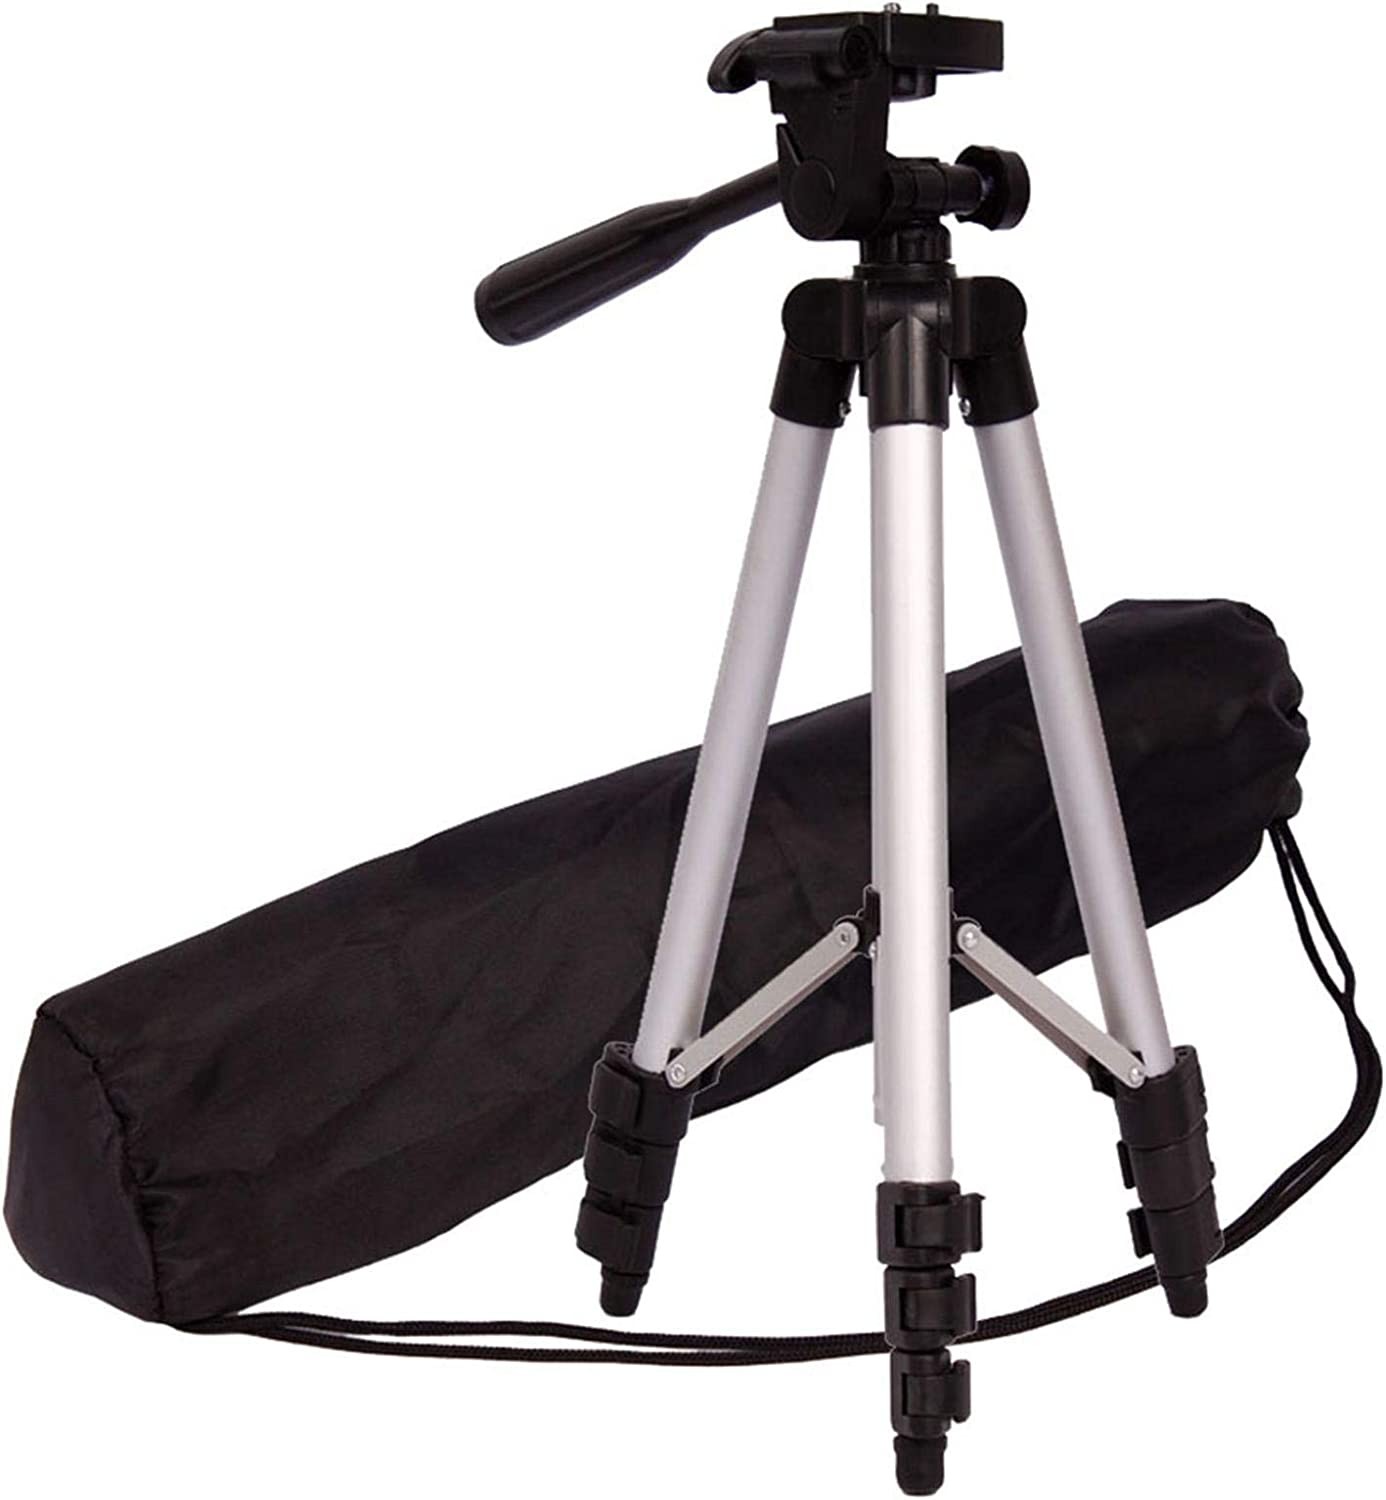 Max 64% OFF Activane Professional Superior Camera Tripod with WEIFENG Carry Bag WT311